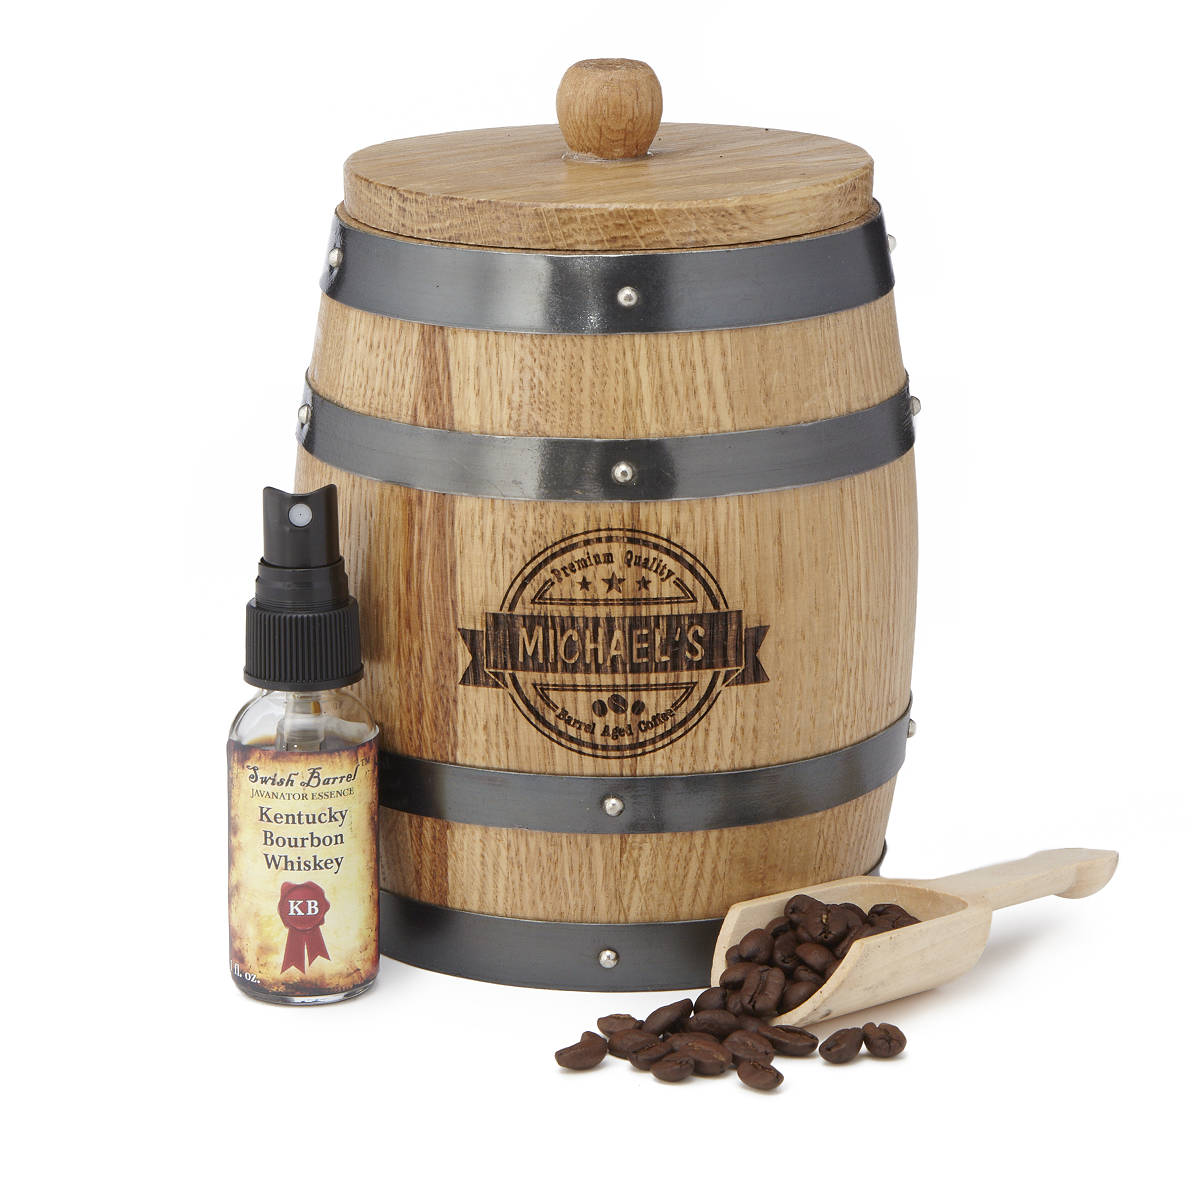 Personalized Barrel Aged Coffee Infuser   UncommonGoods